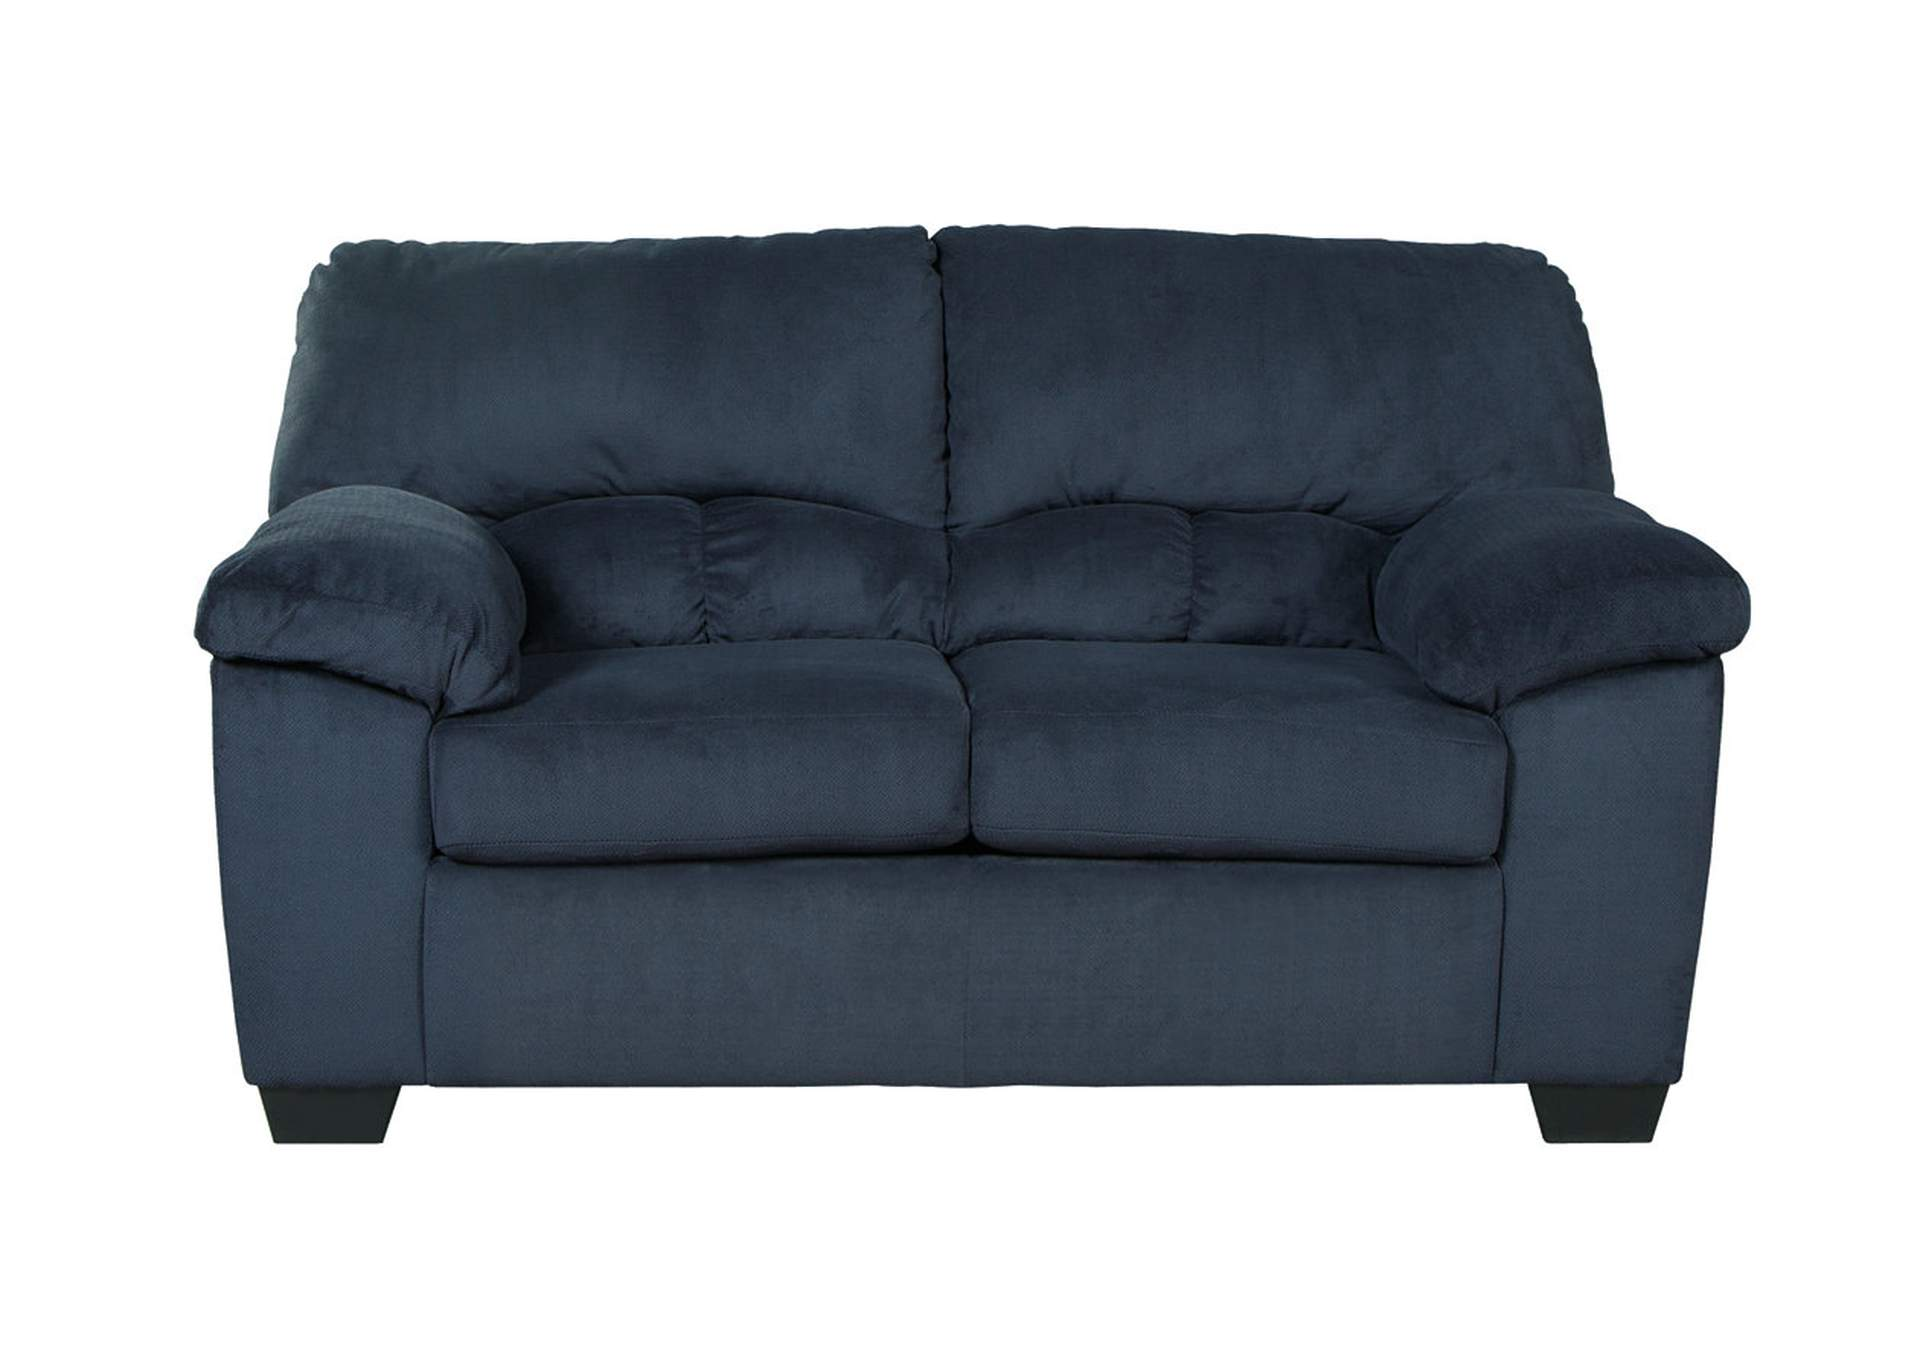 Dailey Midnight Loveseat,Signature Design By Ashley